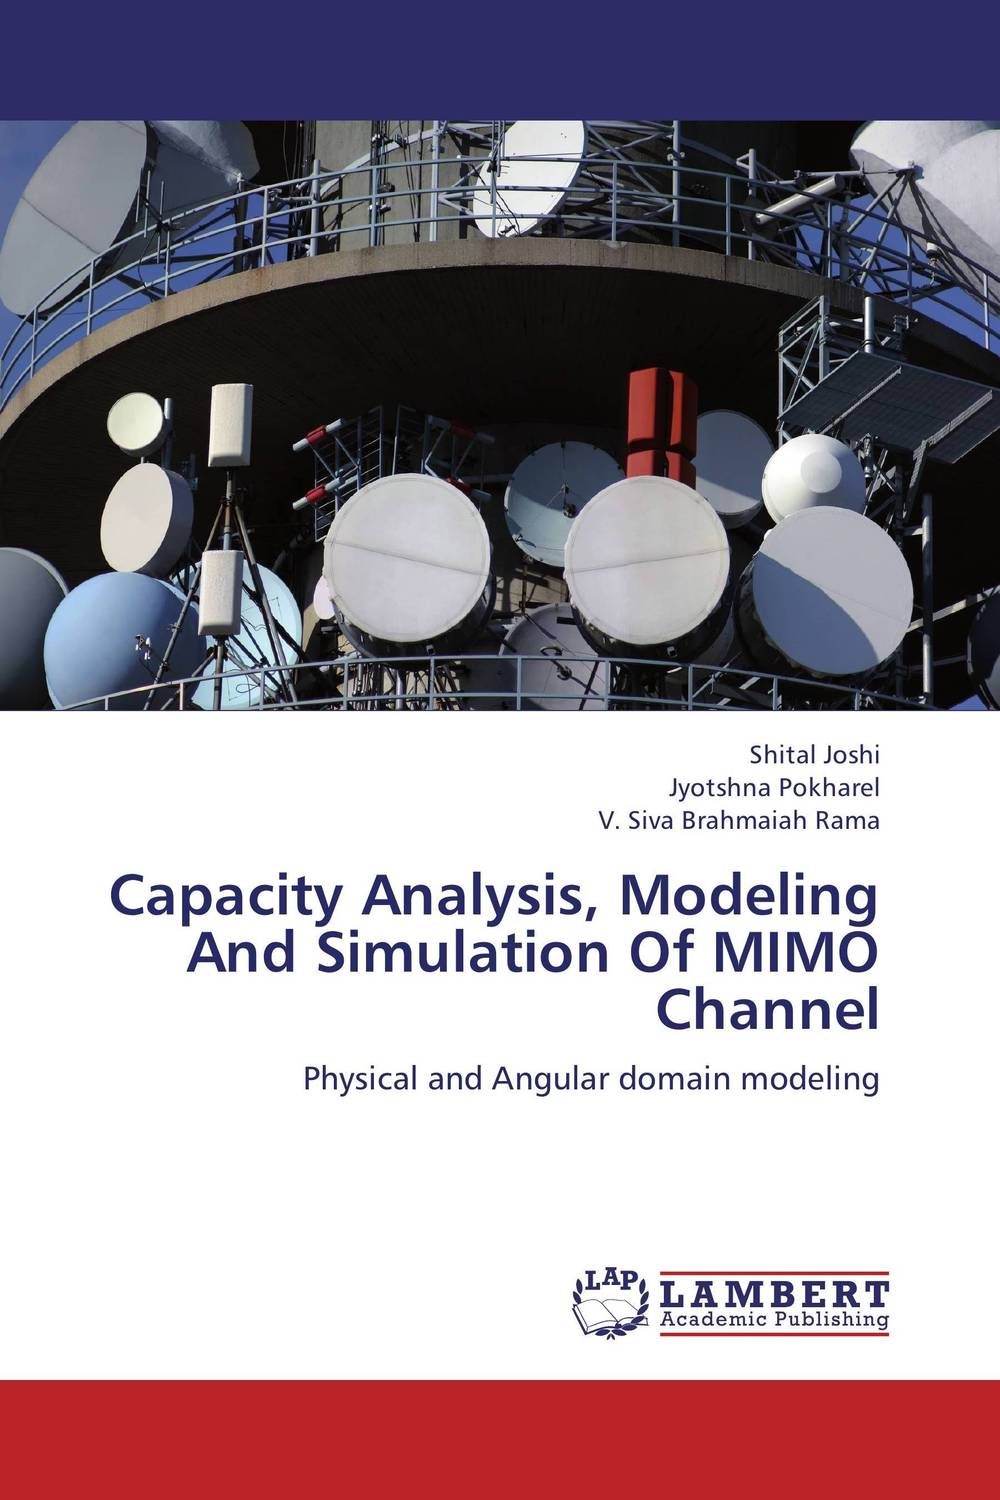 Capacity Analysis, Modeling And Simulation Of MIMO Channel paichuan chen extending the quandt ramsey modeling to survival analysis